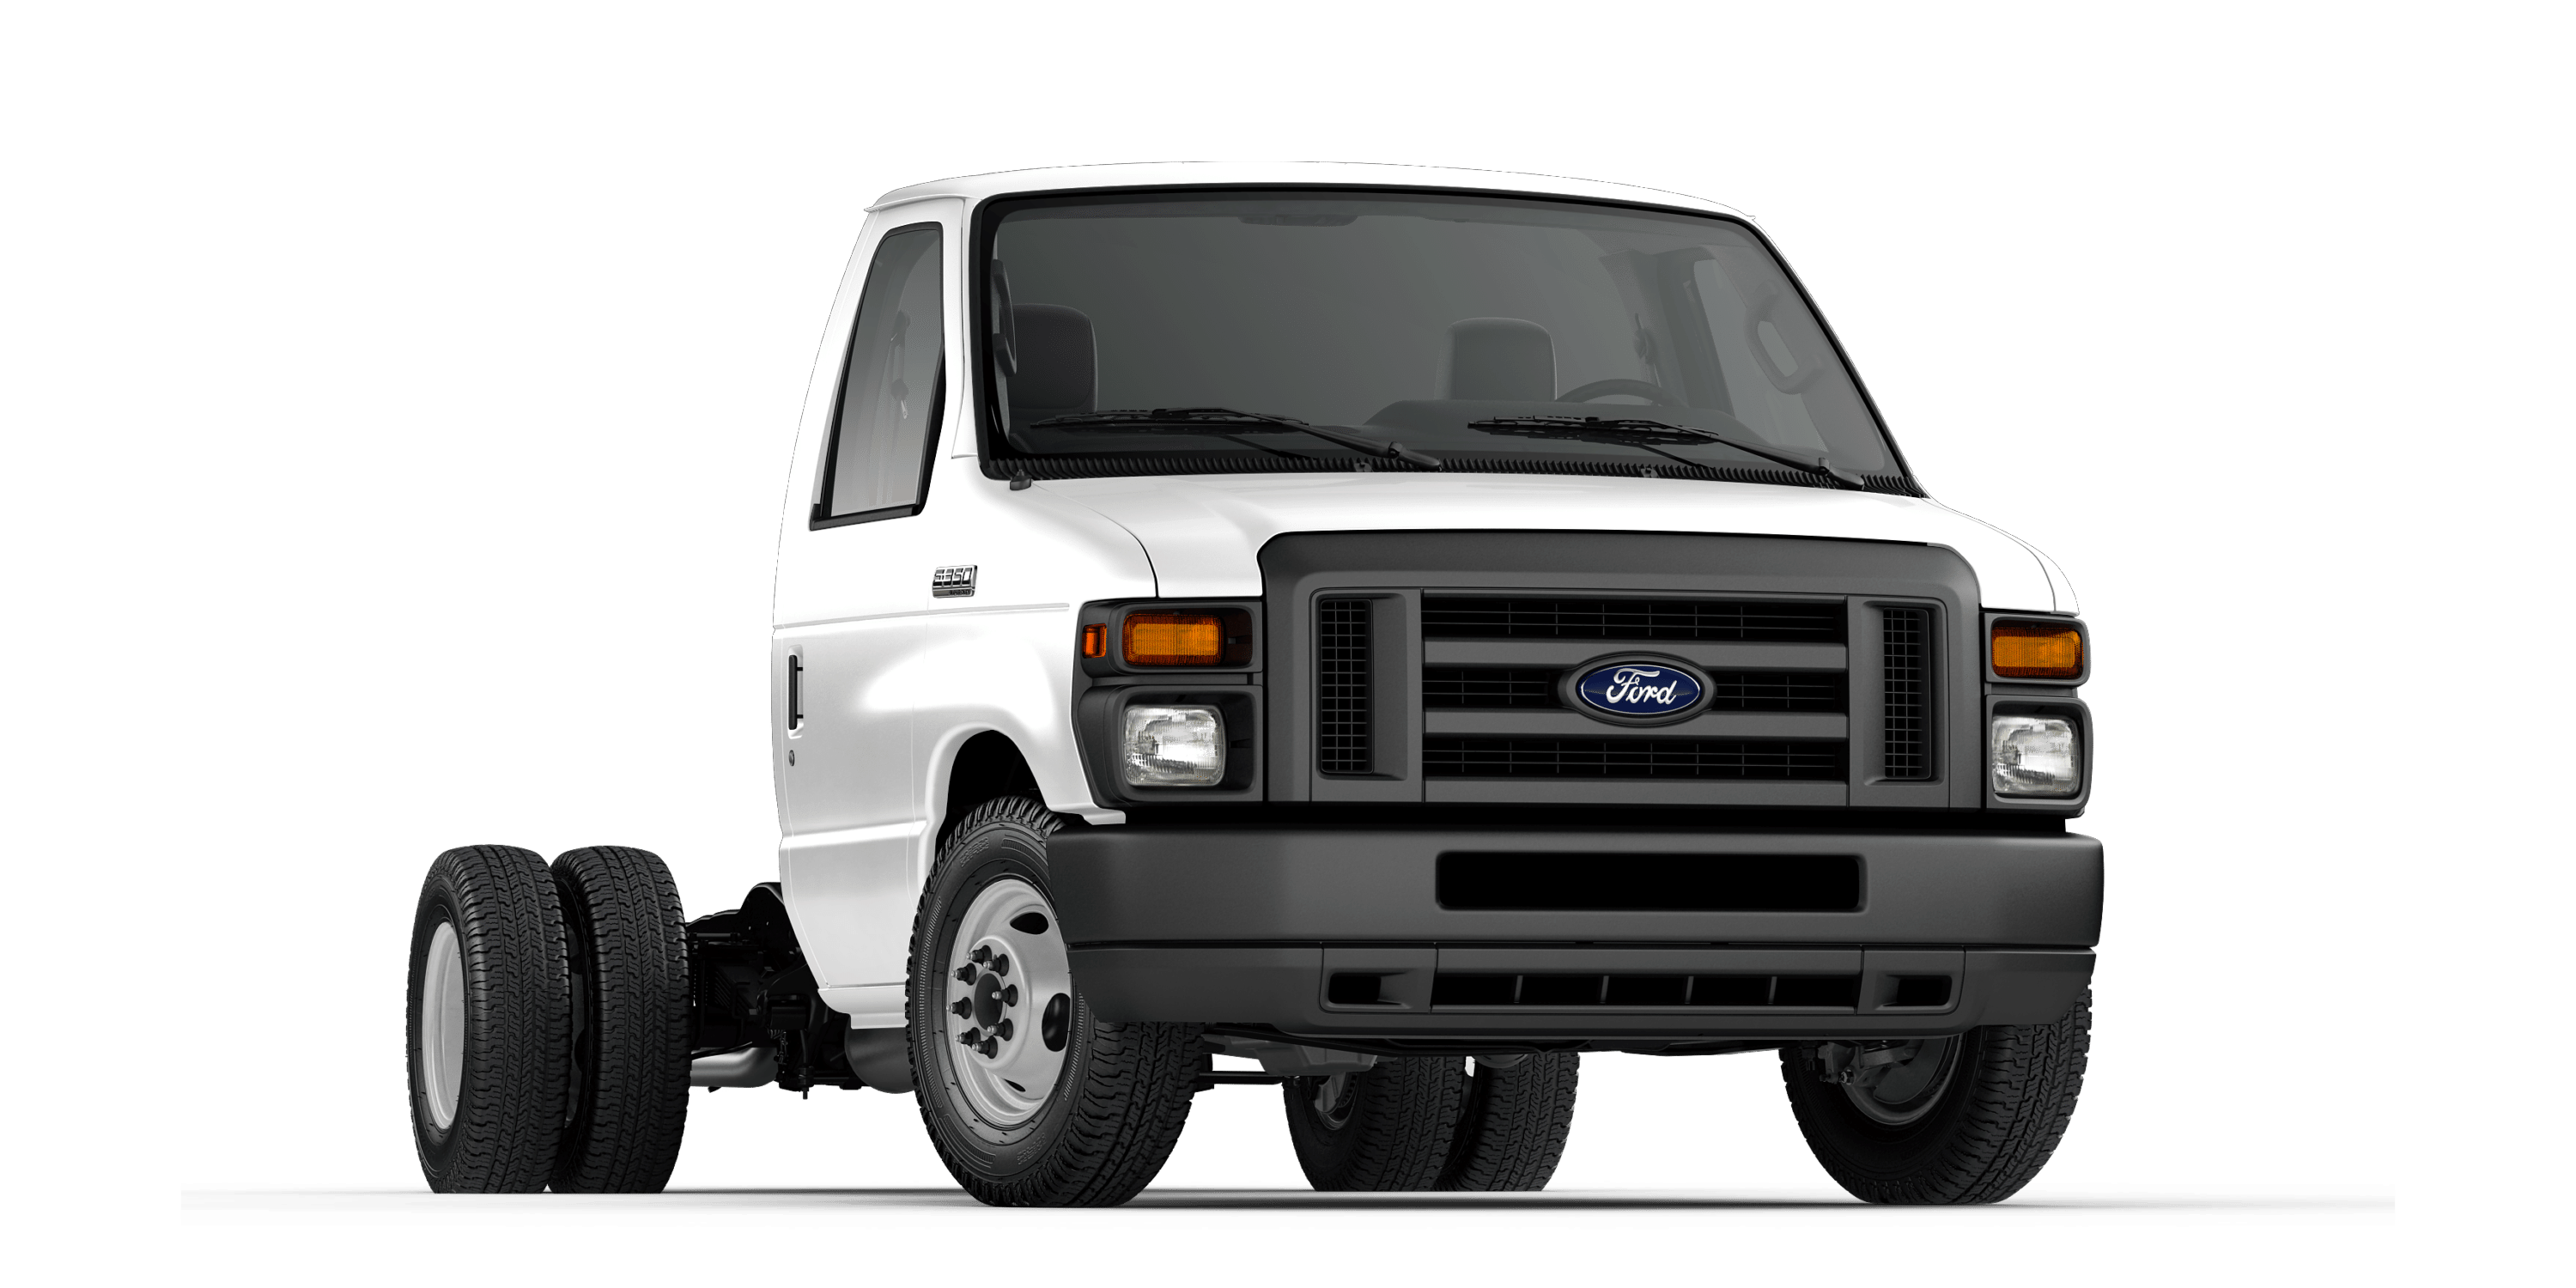 2018 Ford E Series Cutaway for sale in Terrell 1FDWE3F61JDC